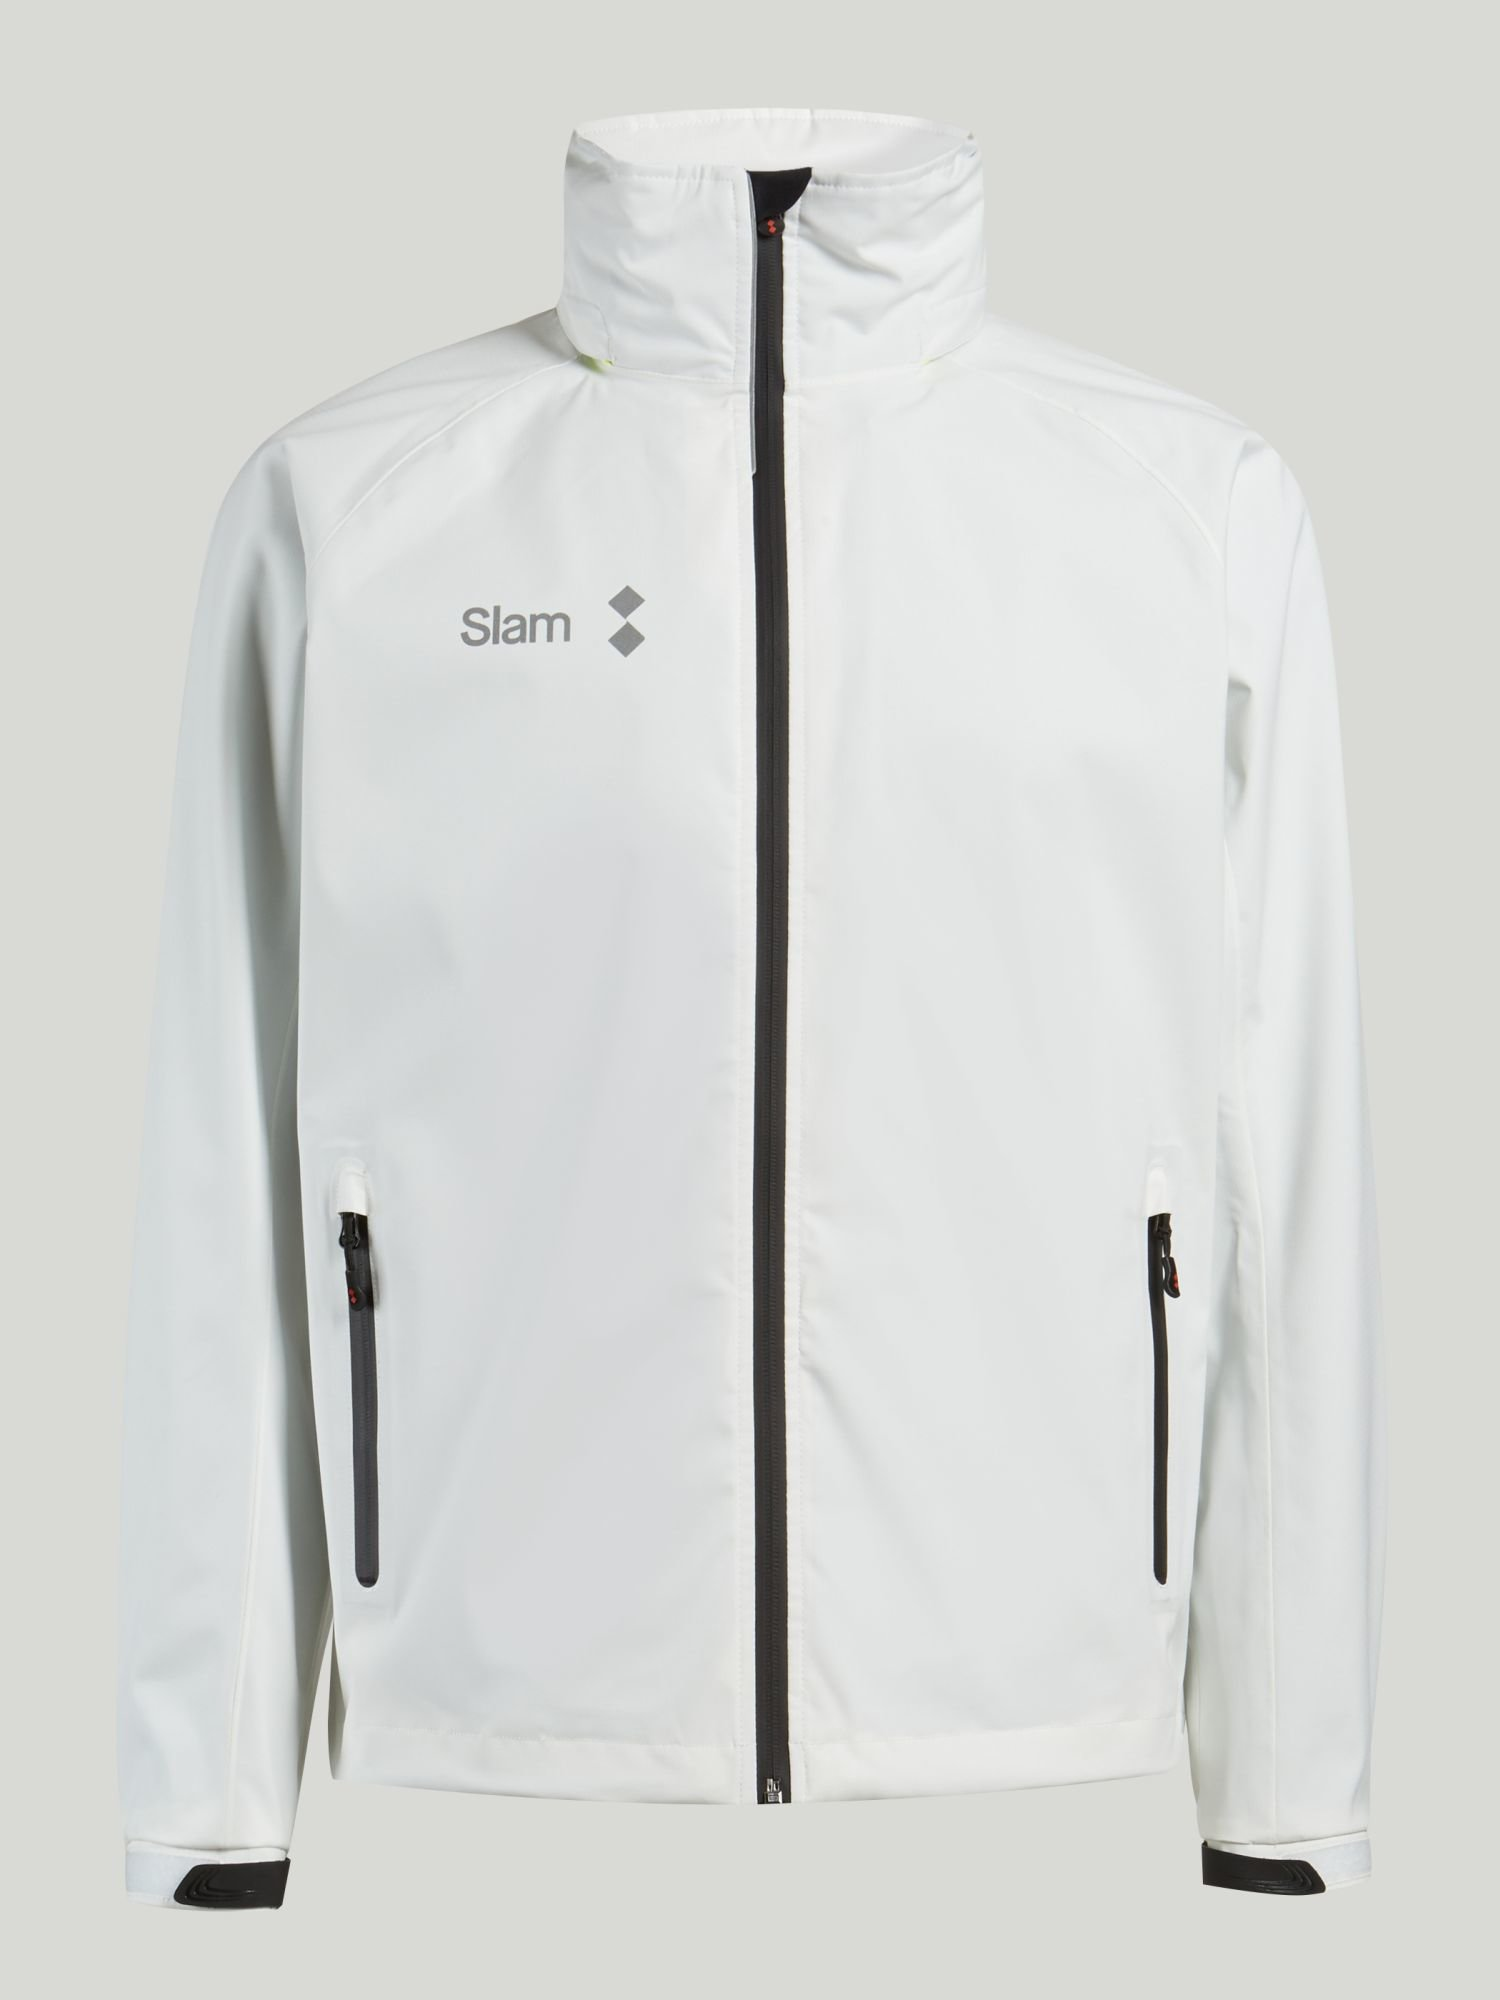 WIN-D 1 SAILING JACKET - White